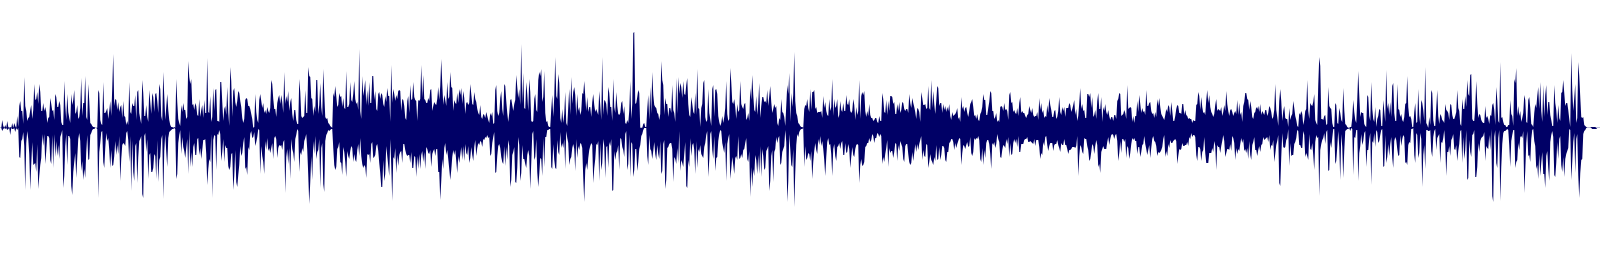 waveform of track #146541